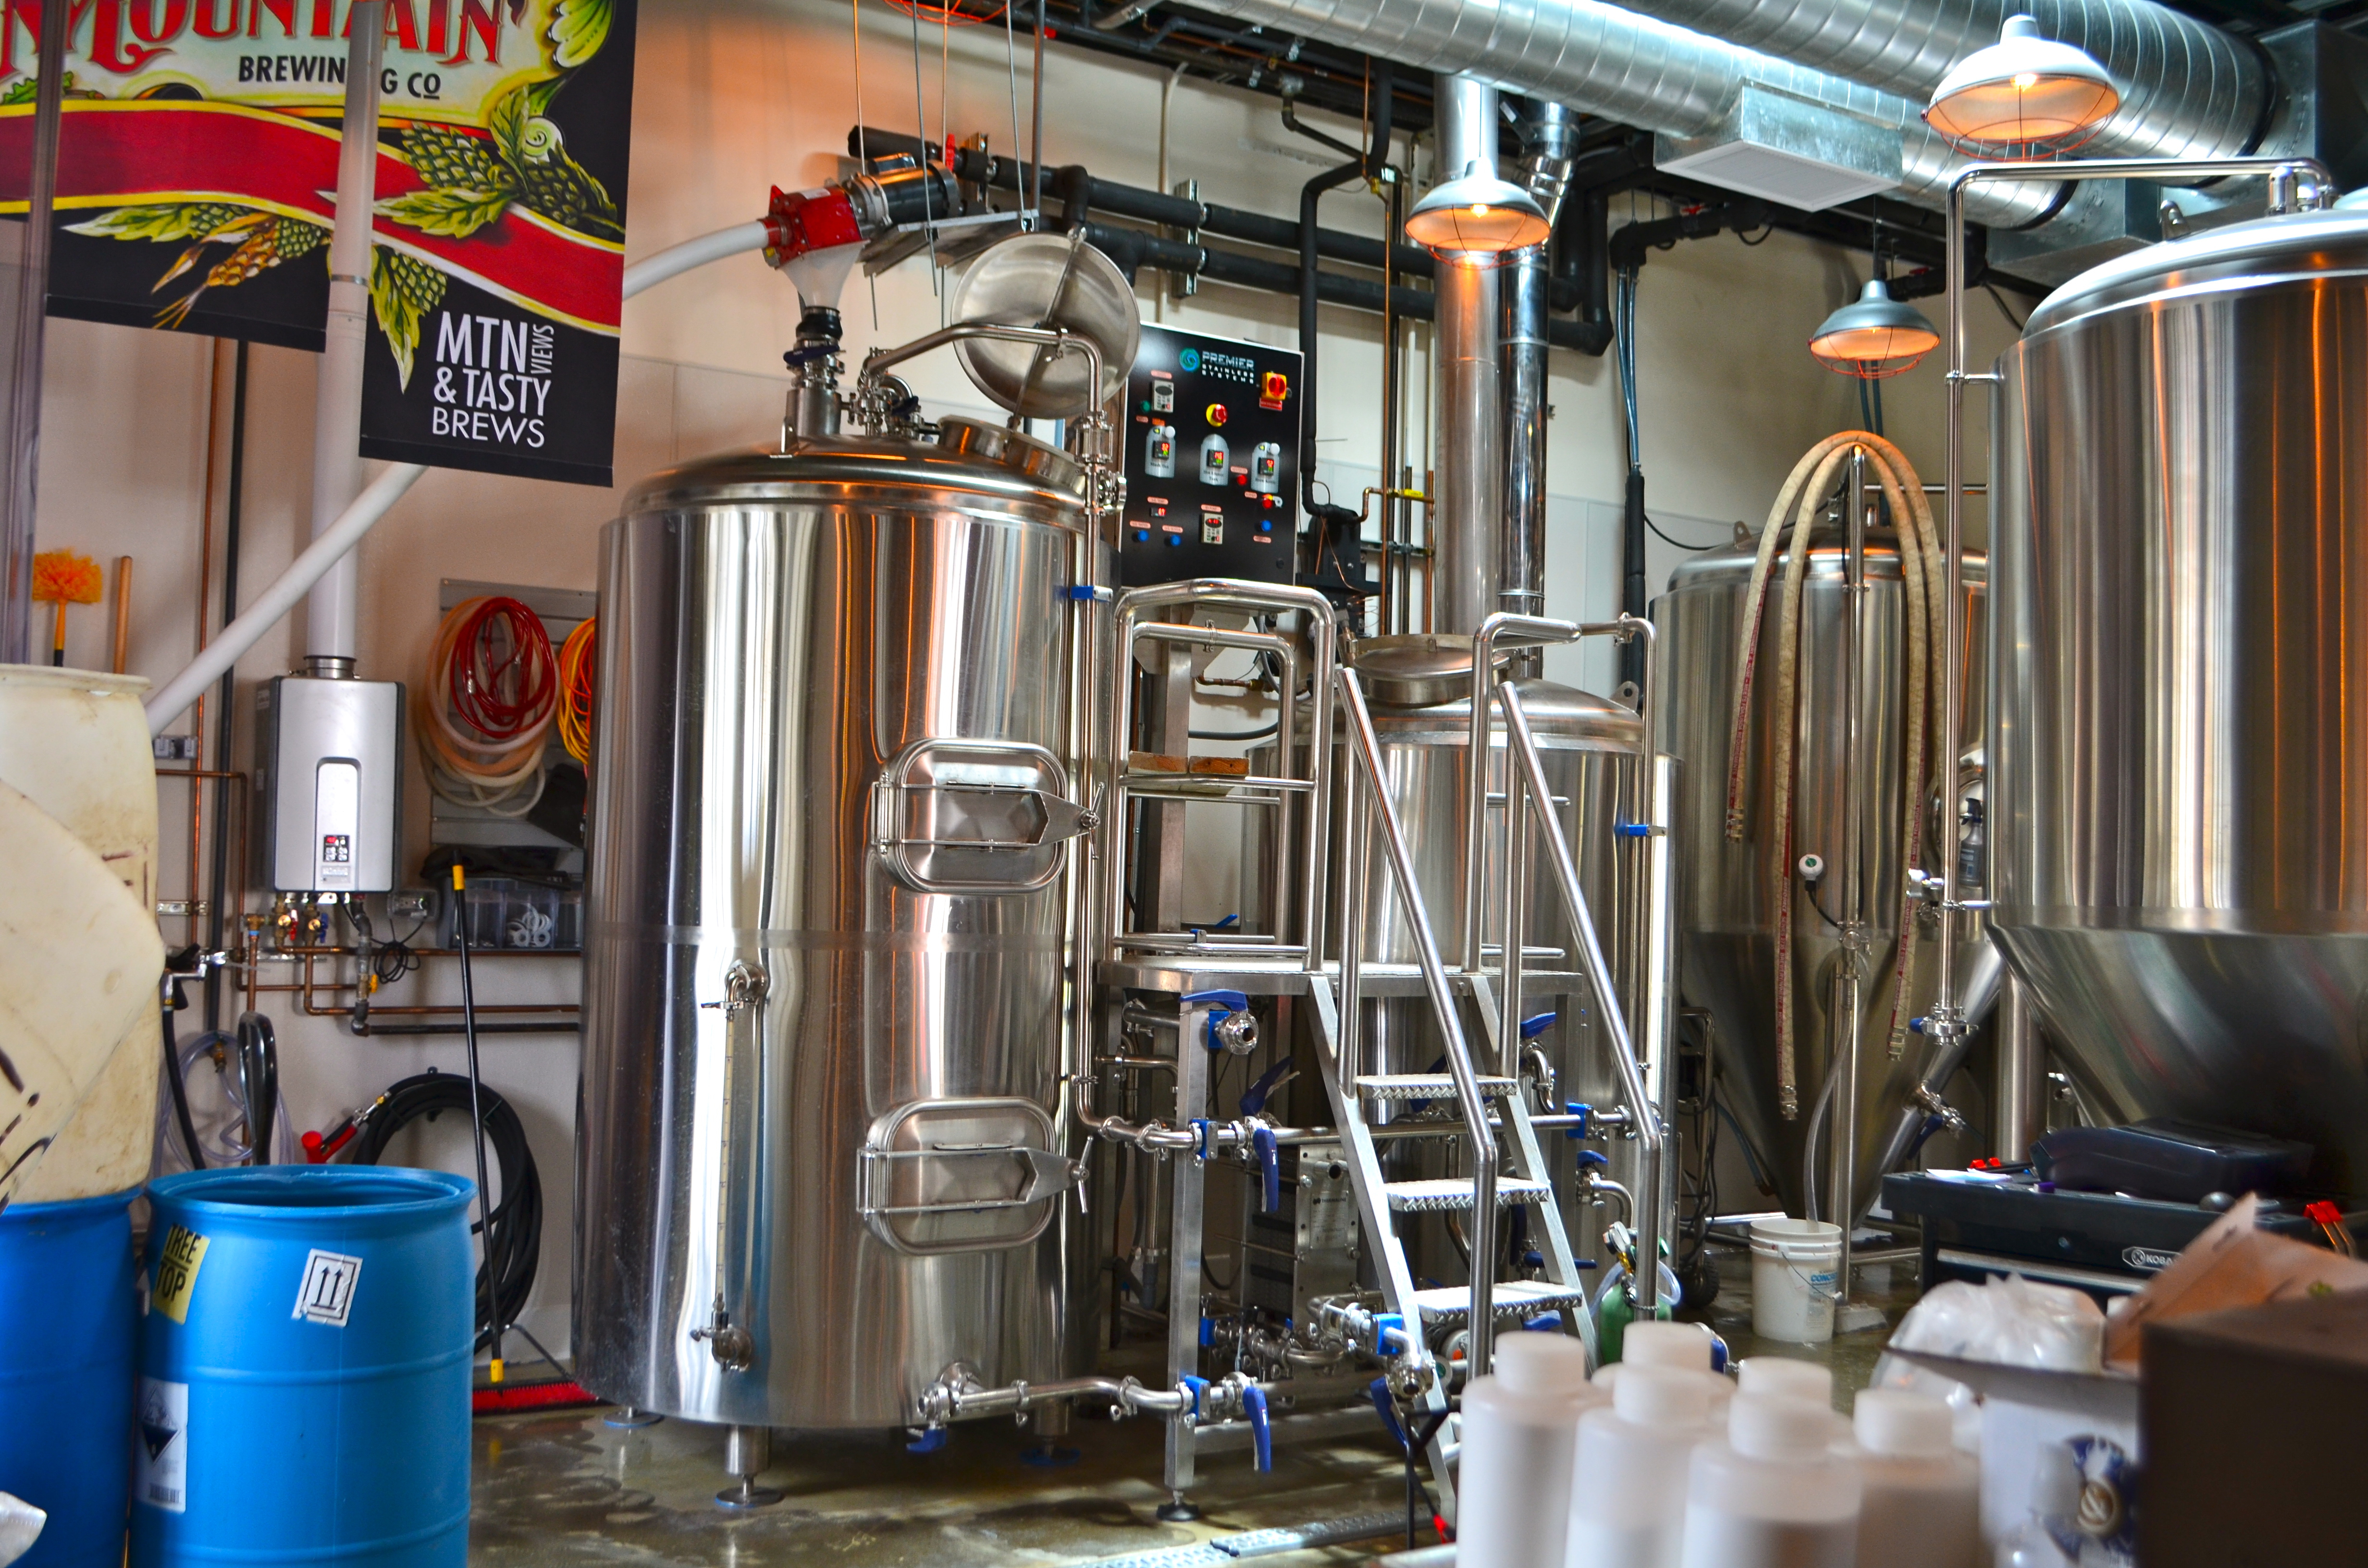 The First Thing You Get To See When Walk In Is Shiny New 7bbl System A La Premier Stainless And Handful Of 15bbl Fermentors